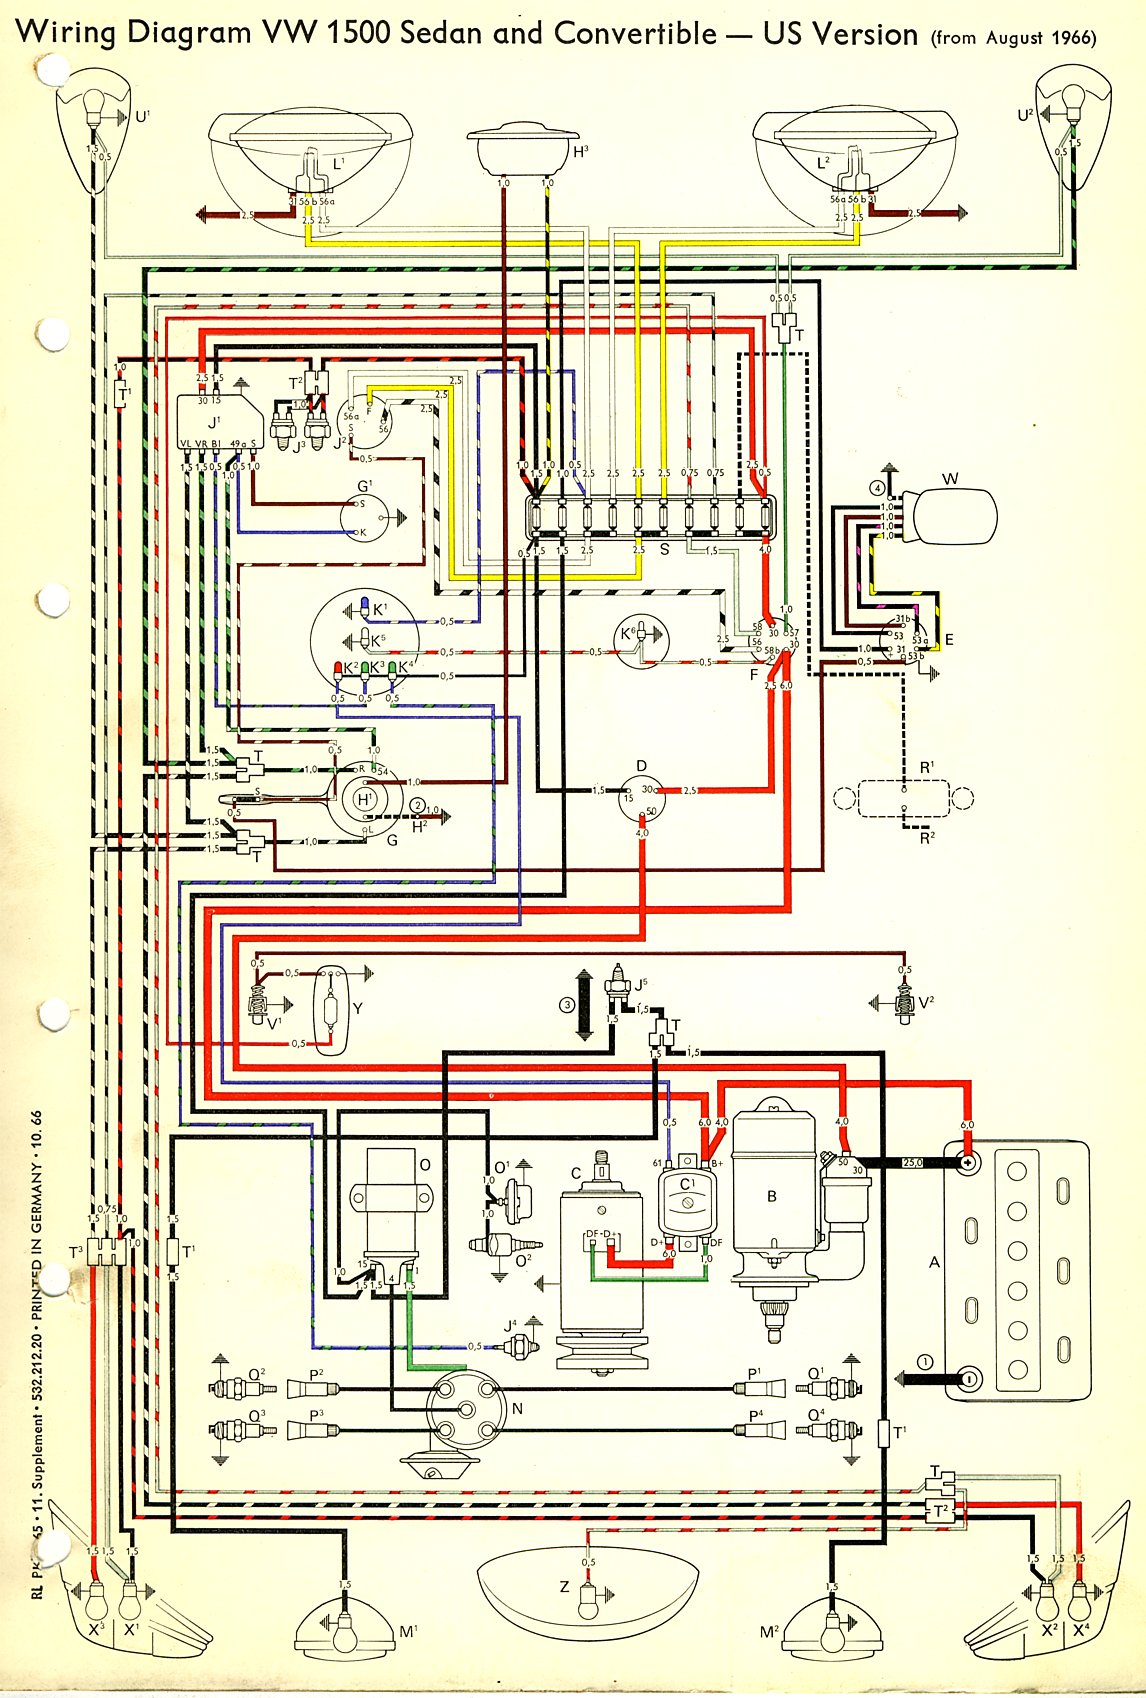 Vw Wiring Harness Diagram - Wiring Diagram Data Oreo on vw dune buggy tires, vw dune buggy motor, meyers manx wiring diagram, vw dune buggy wheels, rail buggy wiring diagram, vw dune buggy engine, vw dune buggy fuel tank, vw dune buggy accessories, vw dune buggy suspension, vw dune buggy body, mini buggy wiring diagram, vw dune buggy radio, vw dune buggy lights, home wiring diagram, vw dune buggy frame, vw dune buggy parts, sand car wiring diagram, vw dune buggy seats, manx buggy wiring diagram, vw dune buggy clutch,